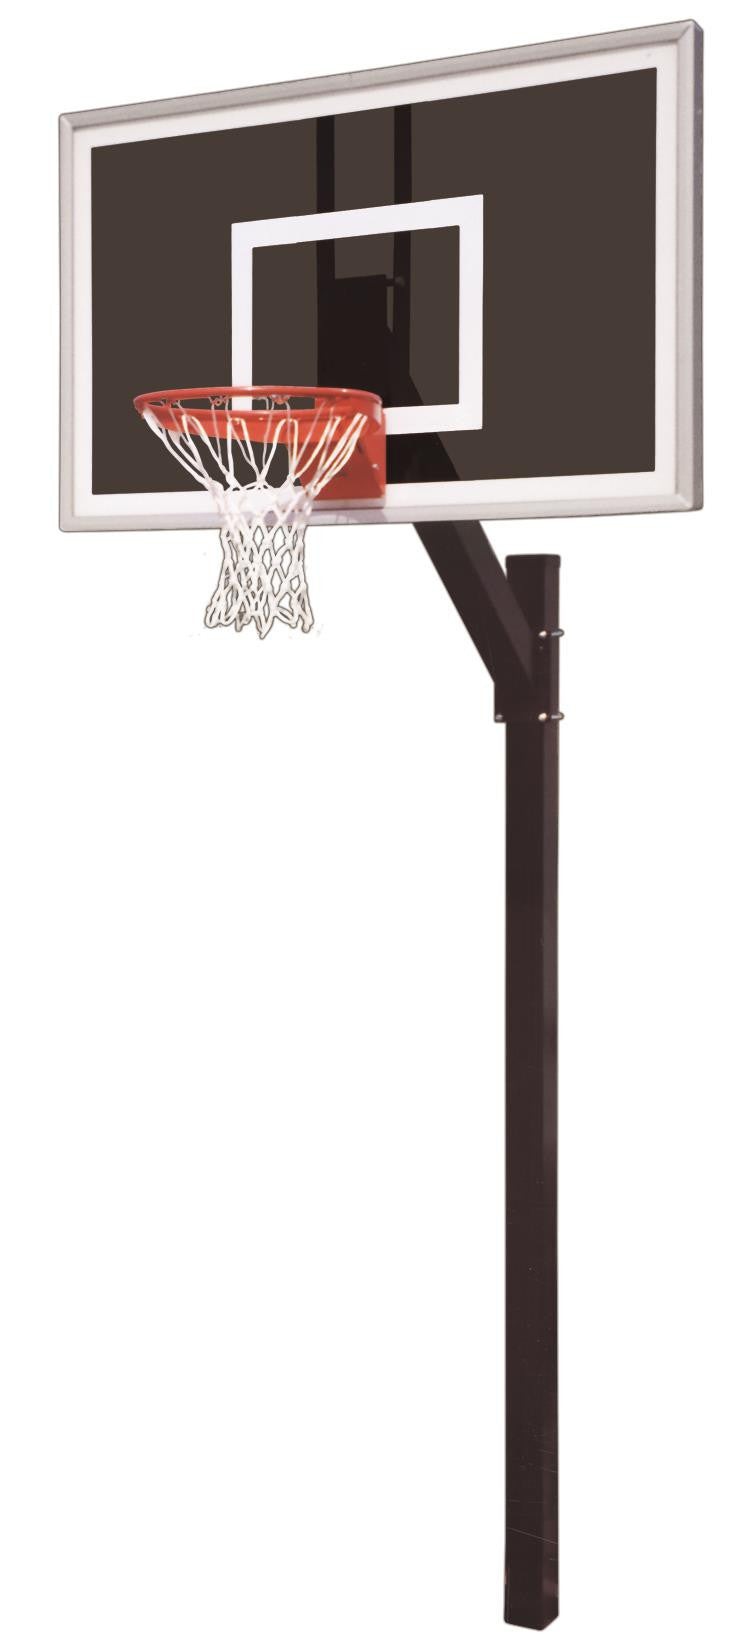 First Team Legacy Eclipse In Ground Fixed Height Outdoor Basketball Hoop 60 inch Smoked Glass